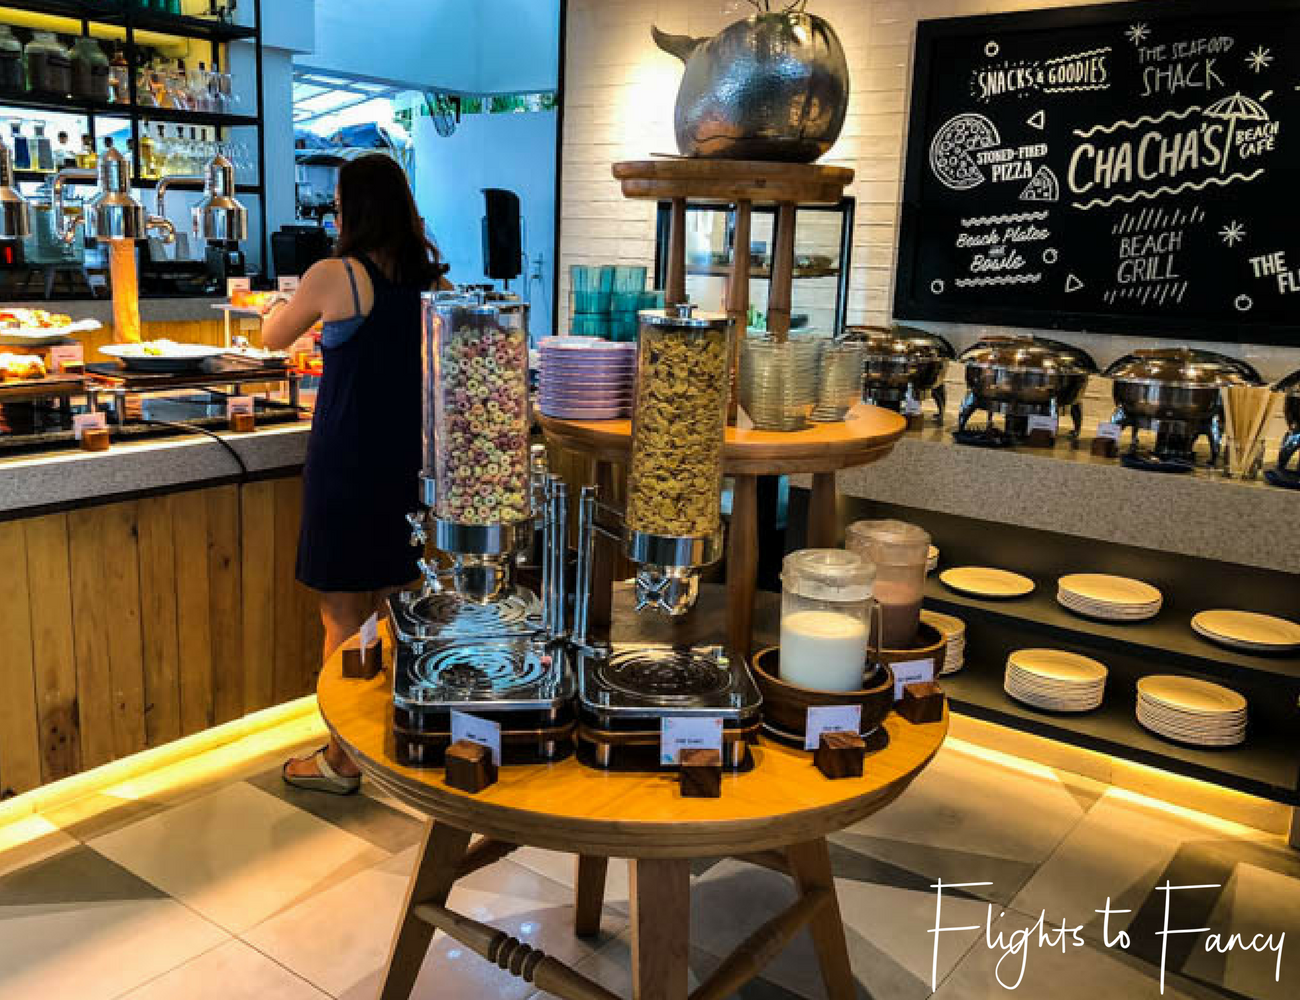 Flights To Fancy at Cha Cha's Boracay - Breakfast Buffet